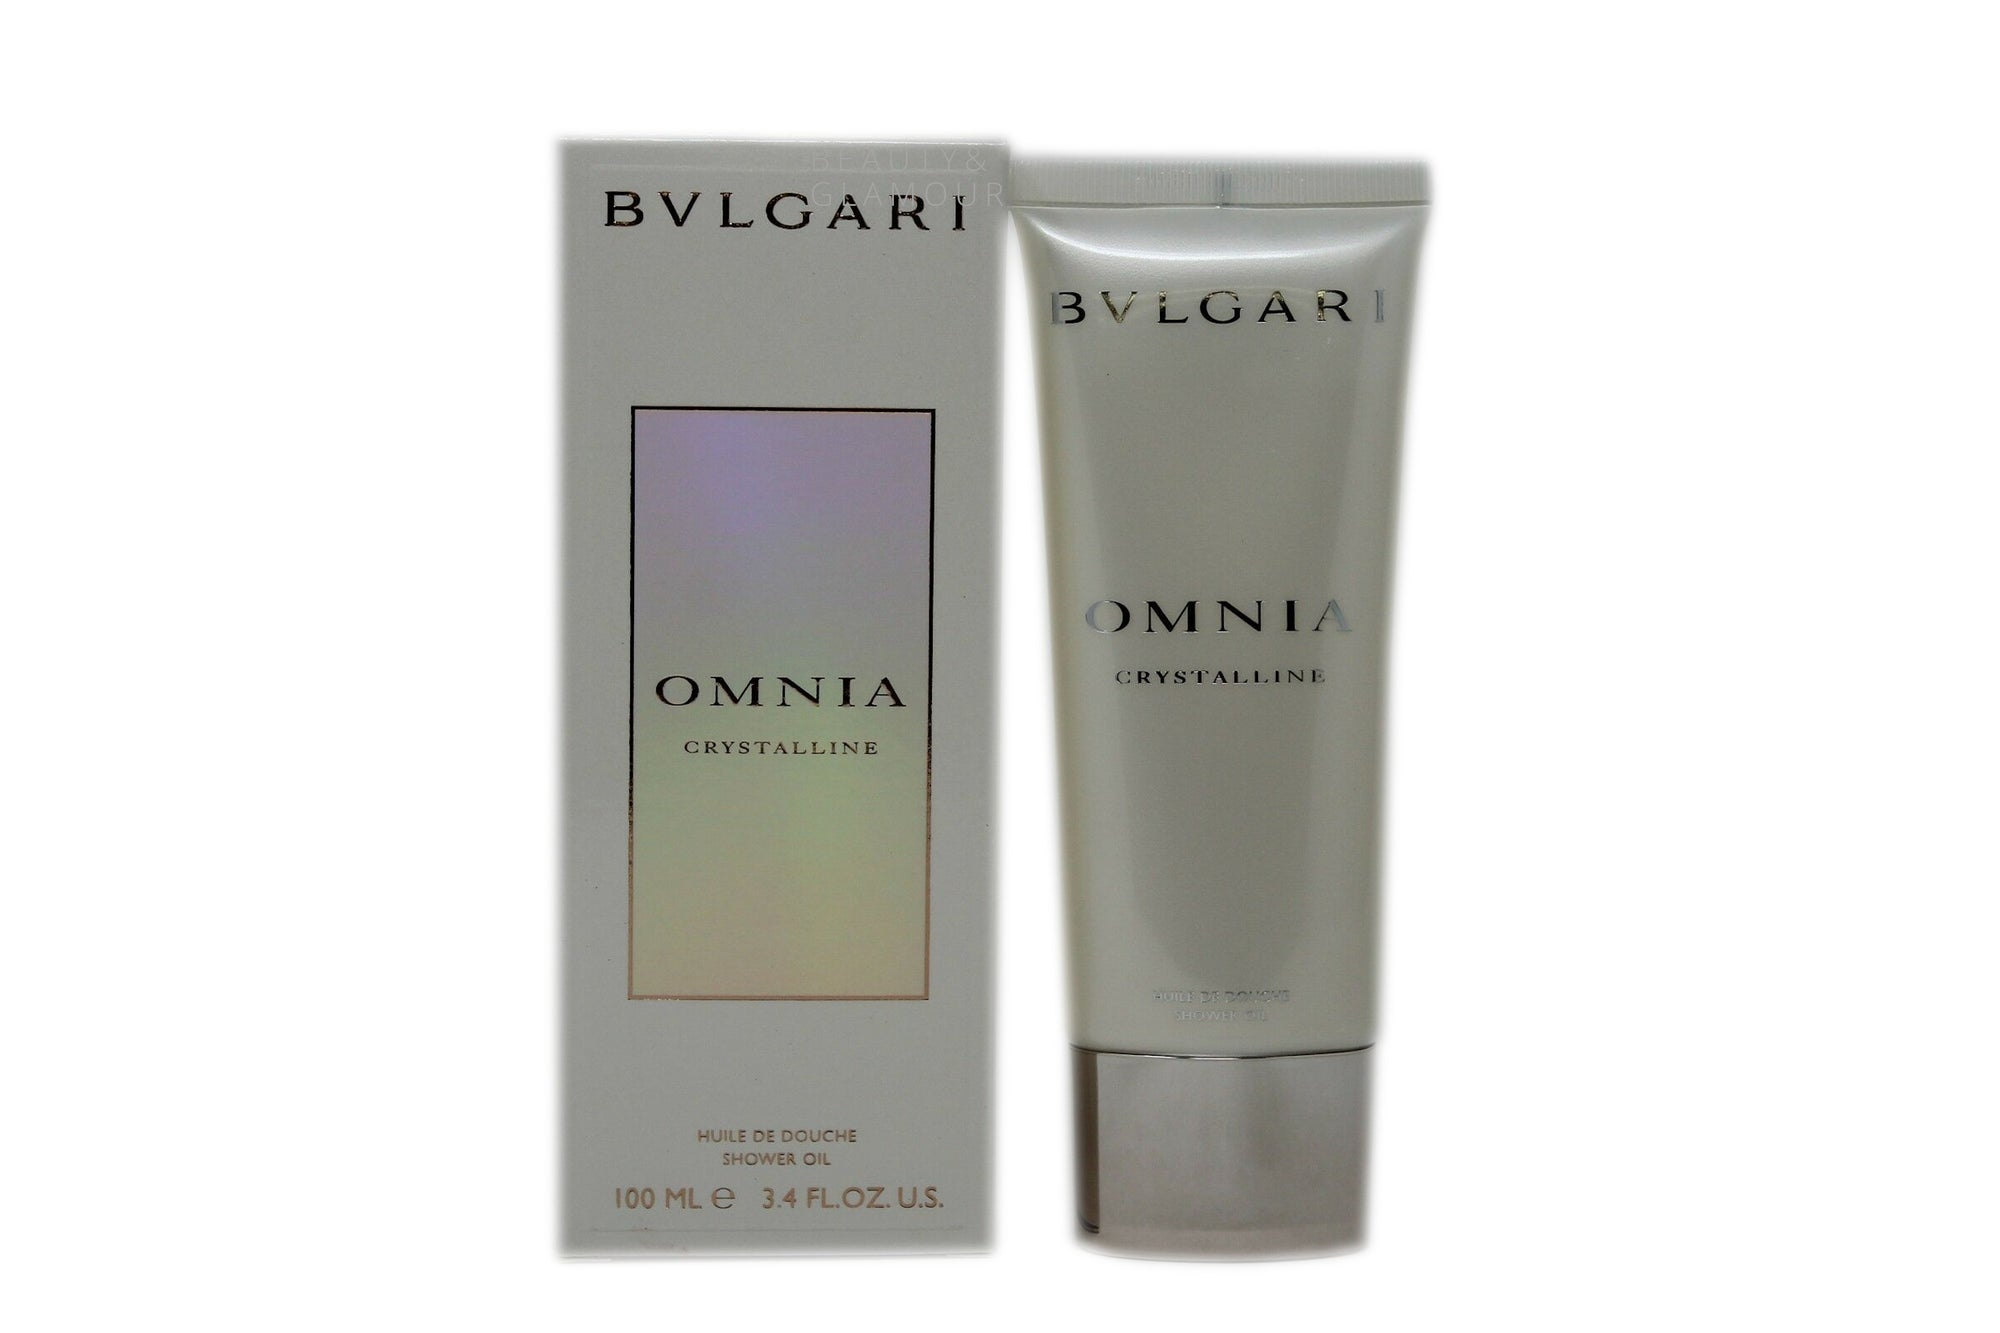 BVLGARI CRYSTALLINE SHOWER OIL